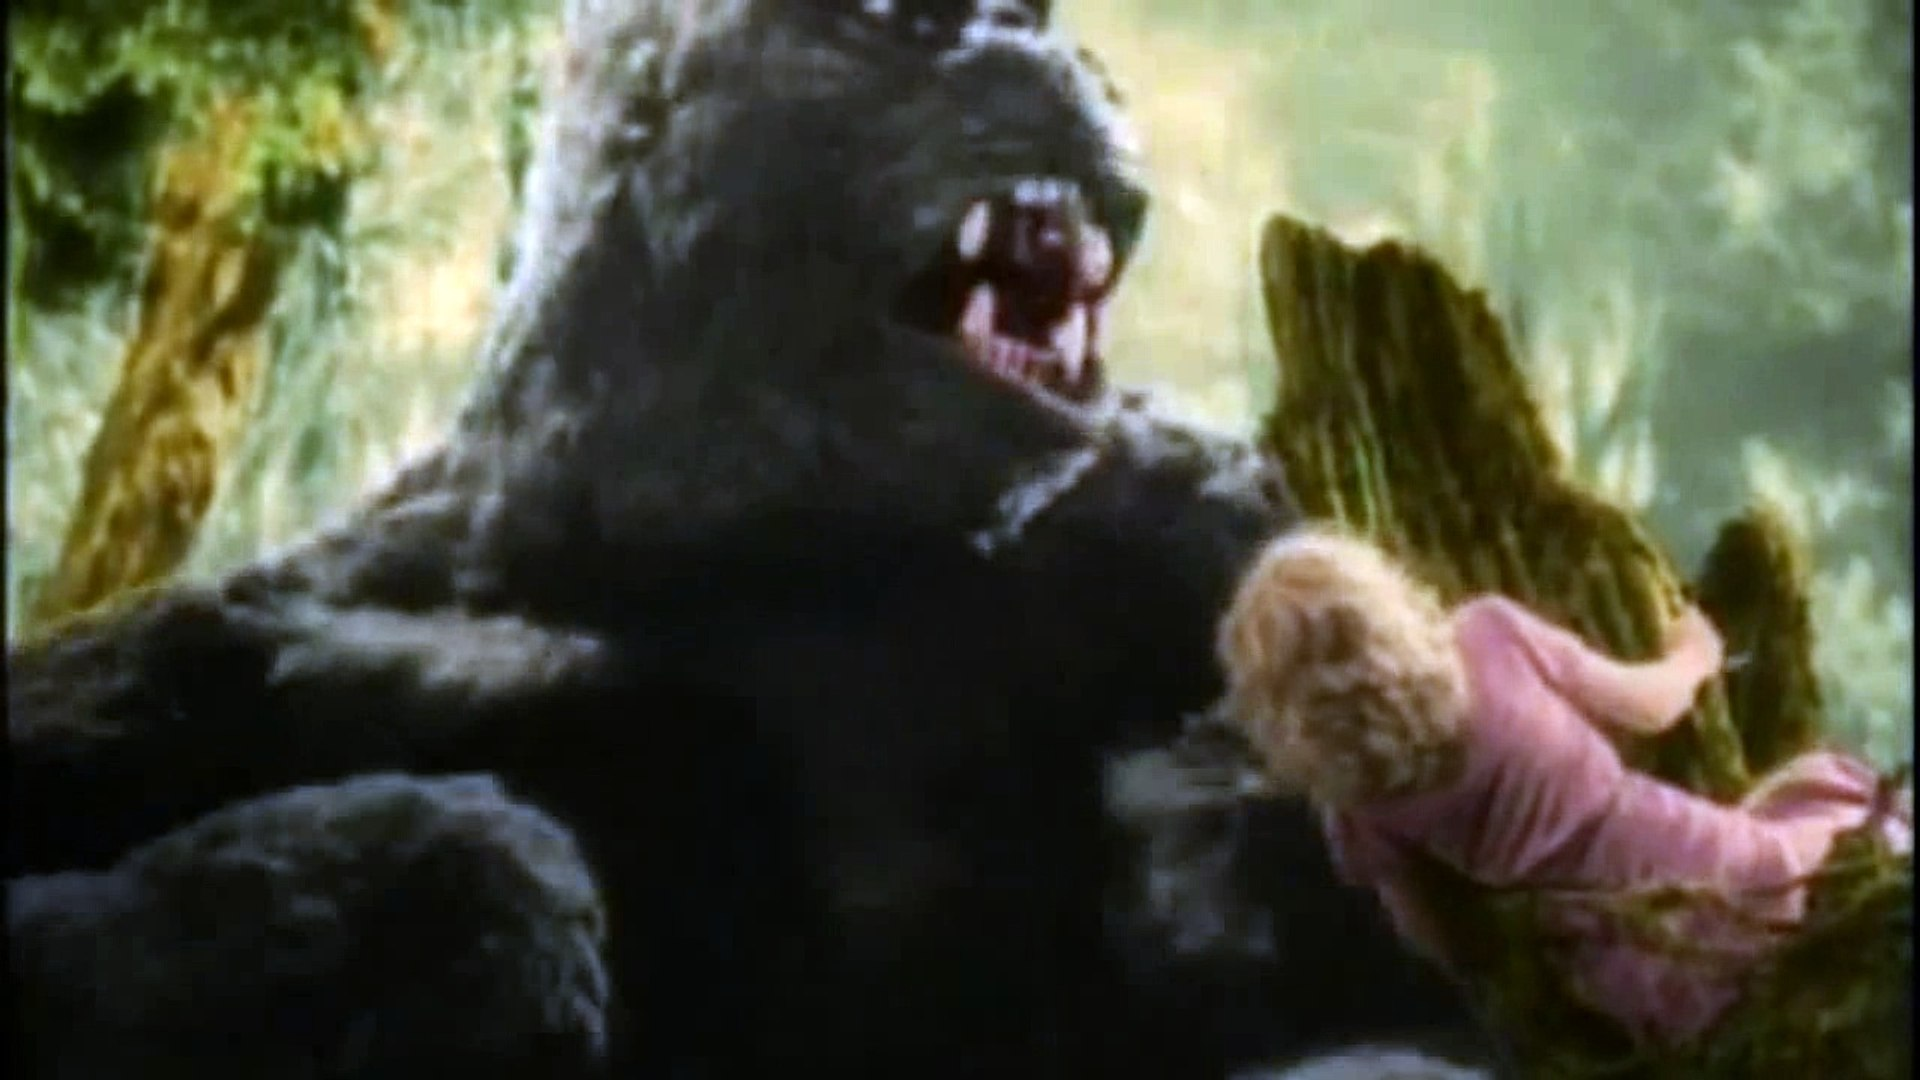 King Kong 1933 In Colour All King Kong Scenes